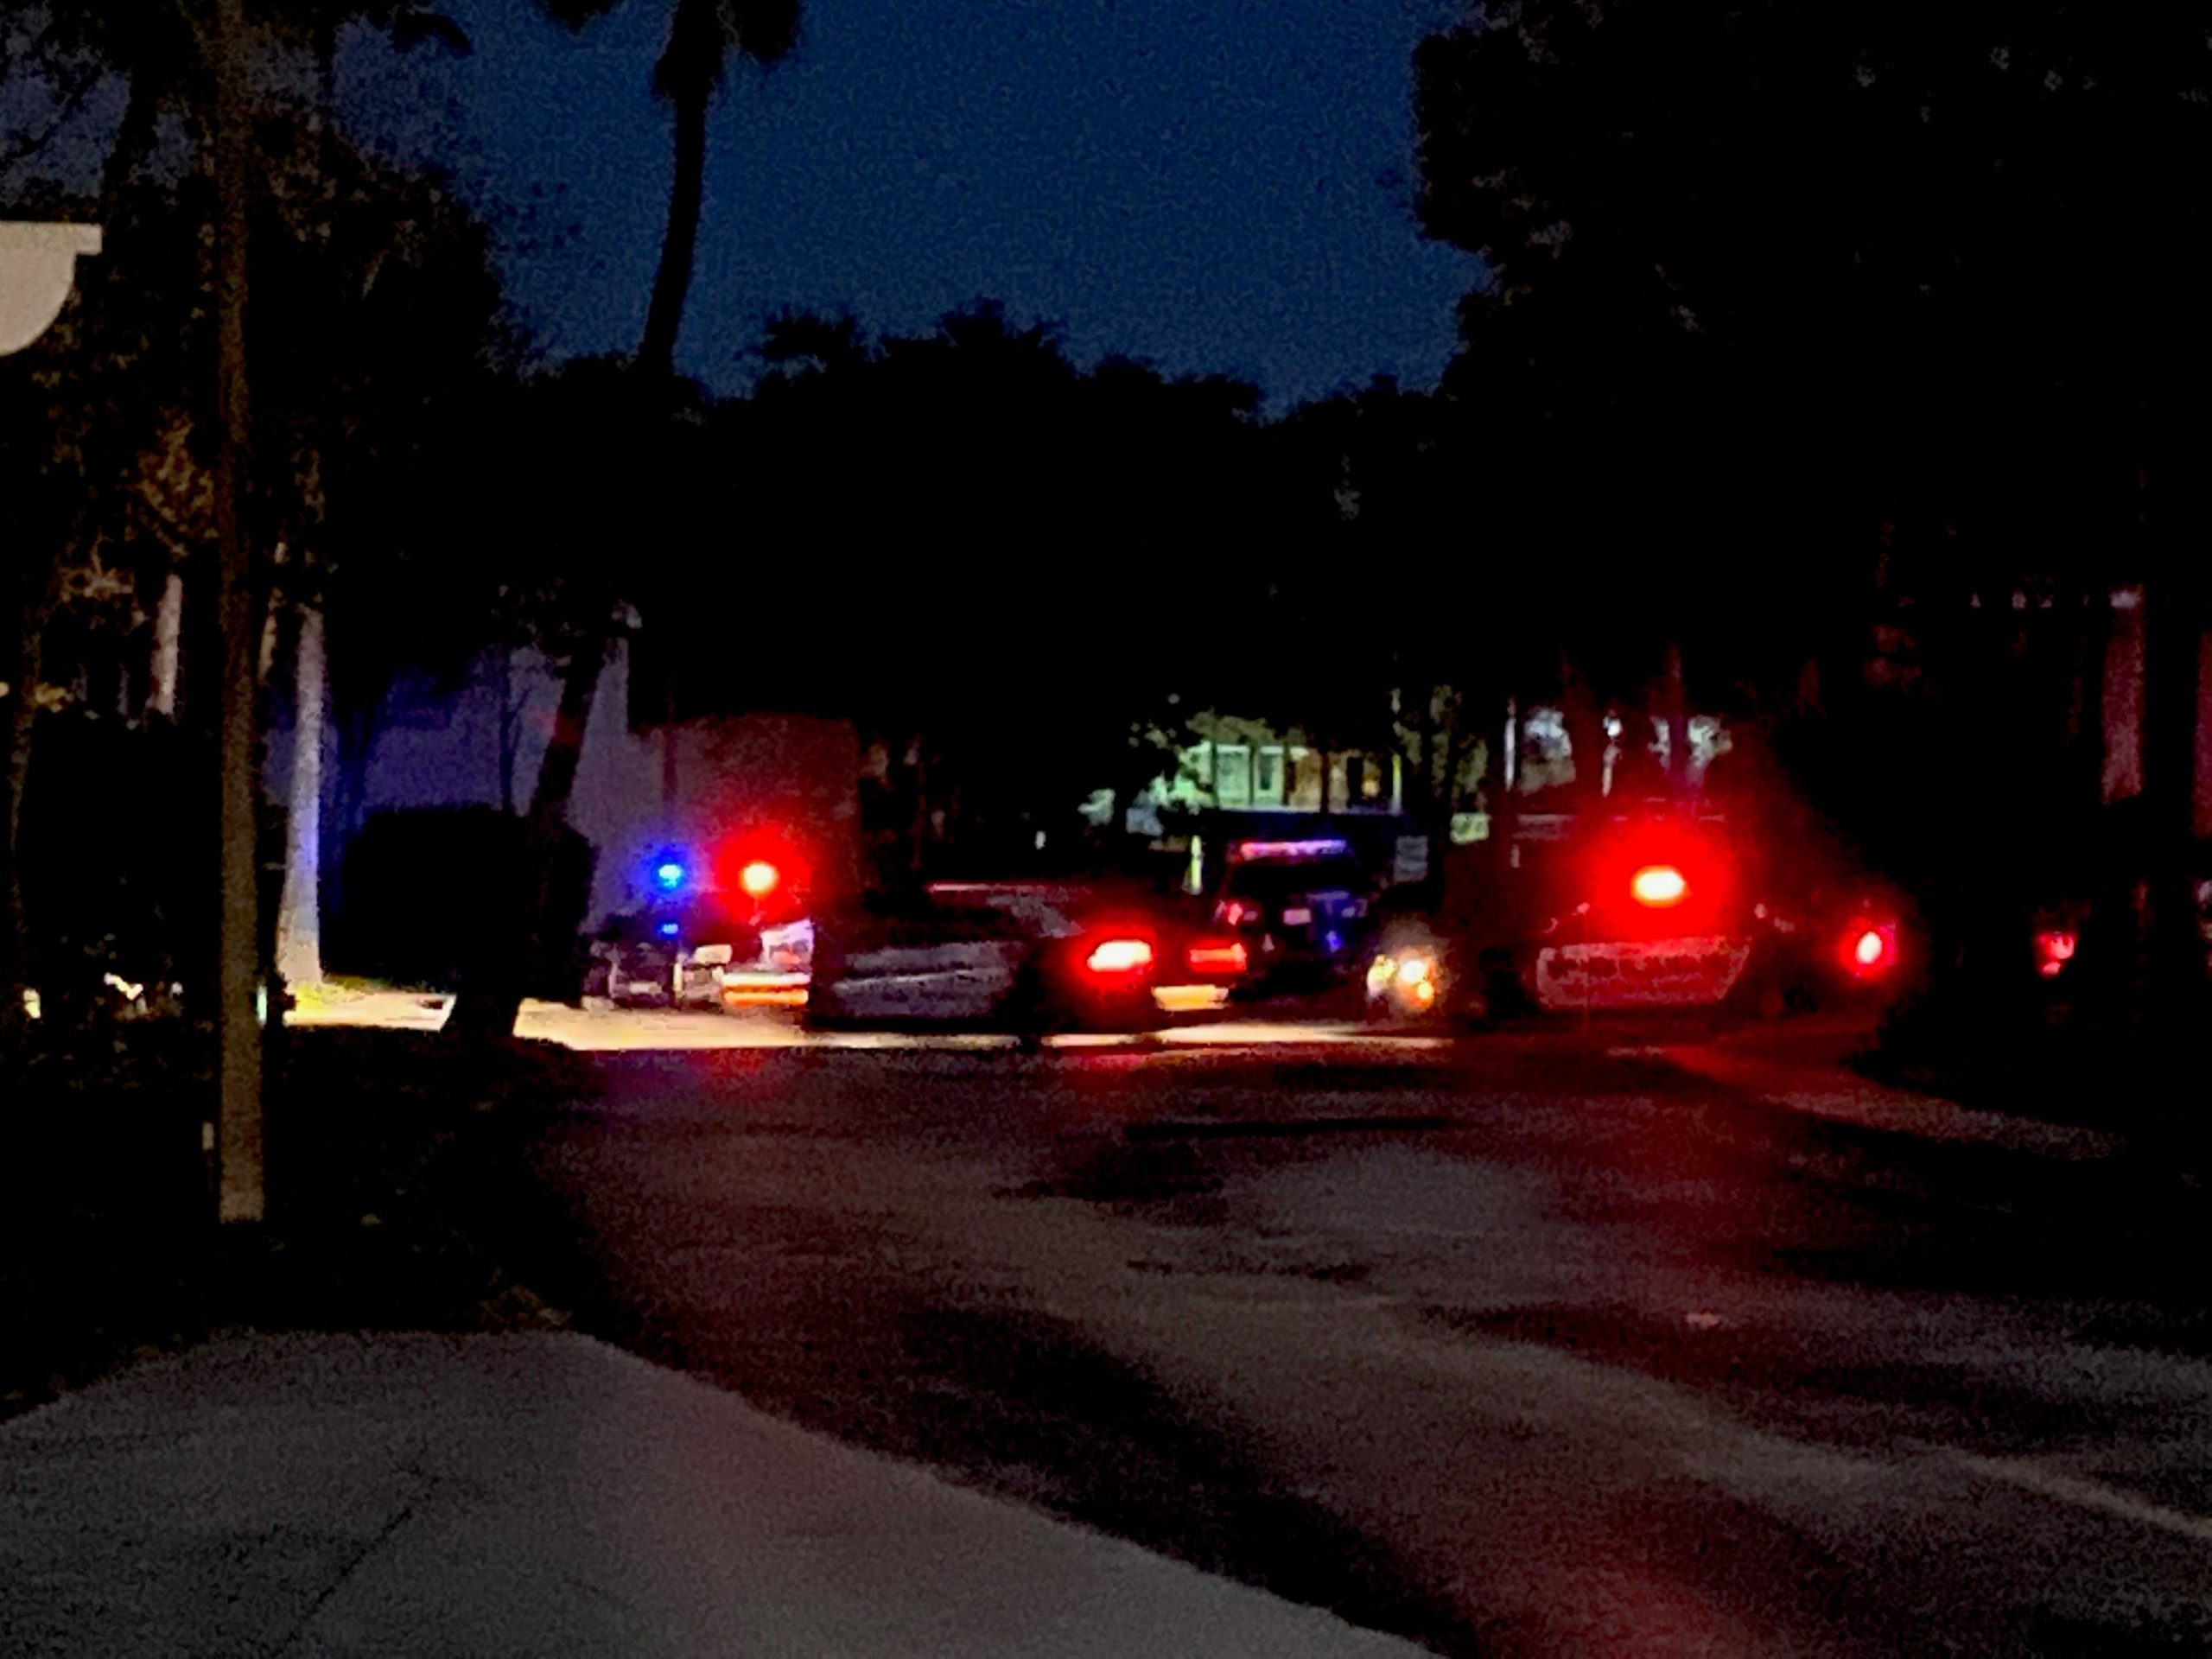 Security guard injured during shots fired incident at West Palm Beach apartment complex